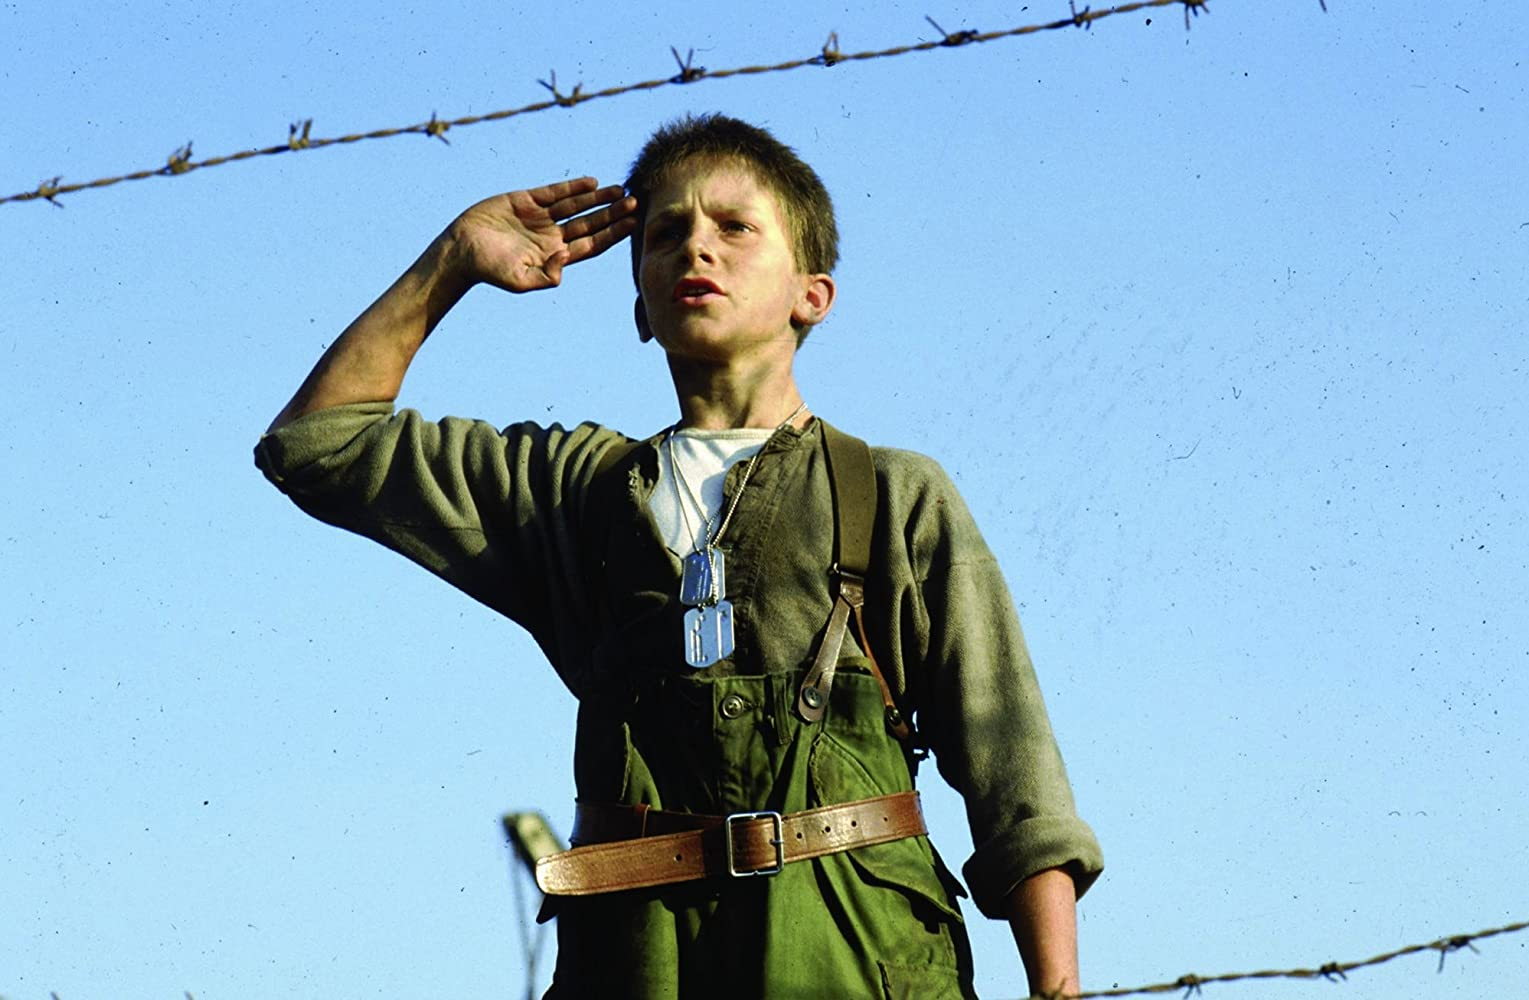 Christian Bale in Empire of the Sun (1987)